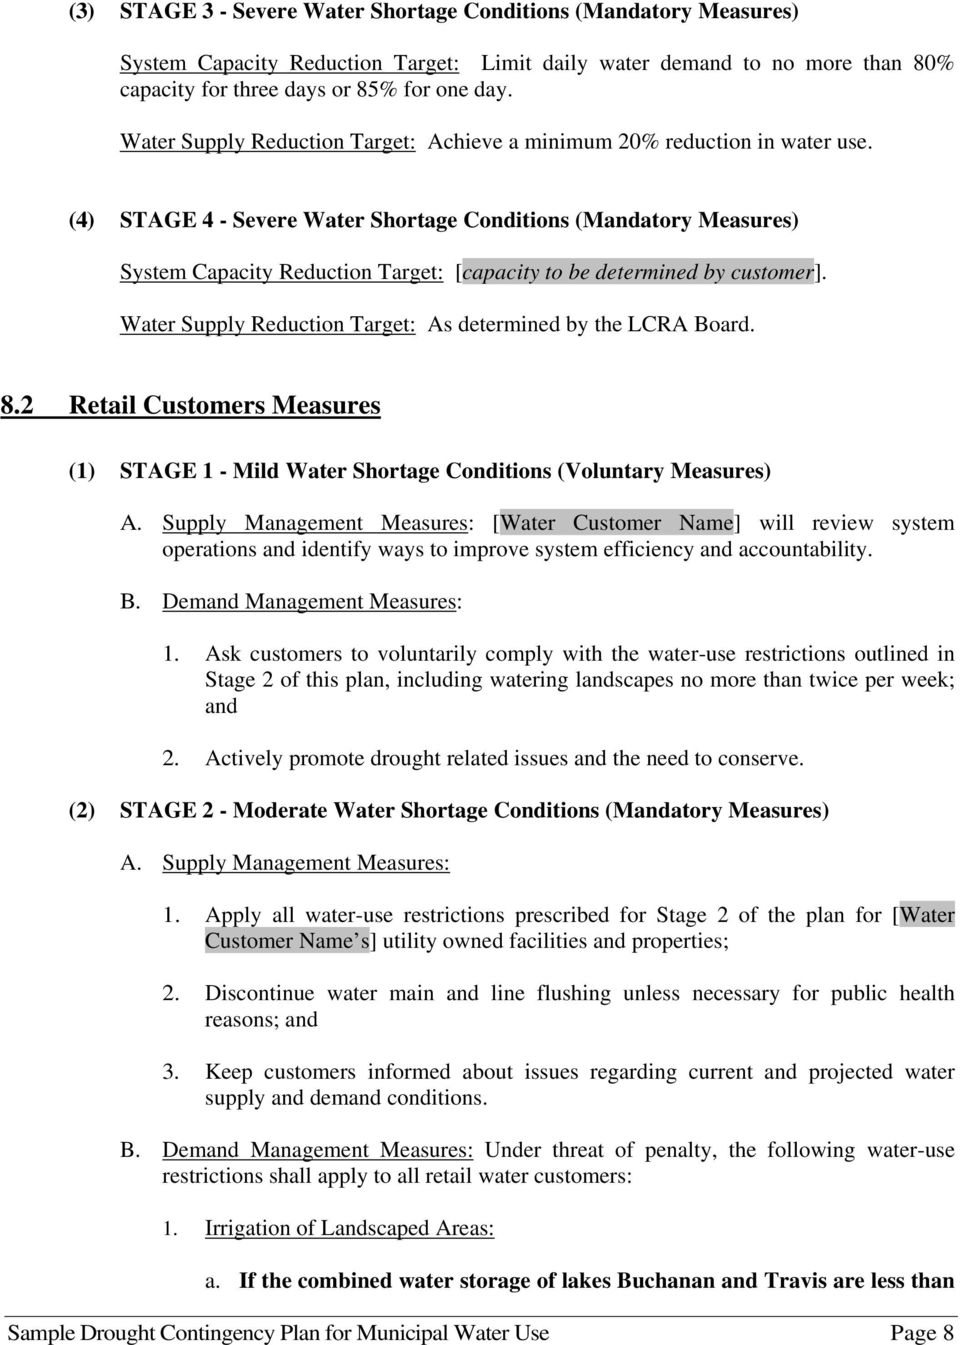 (4) STAGE 4 - Severe Water Shortage Conditions (Mandatory Measures) System Capacity Reduction Target: [capacity to be determined by customer].